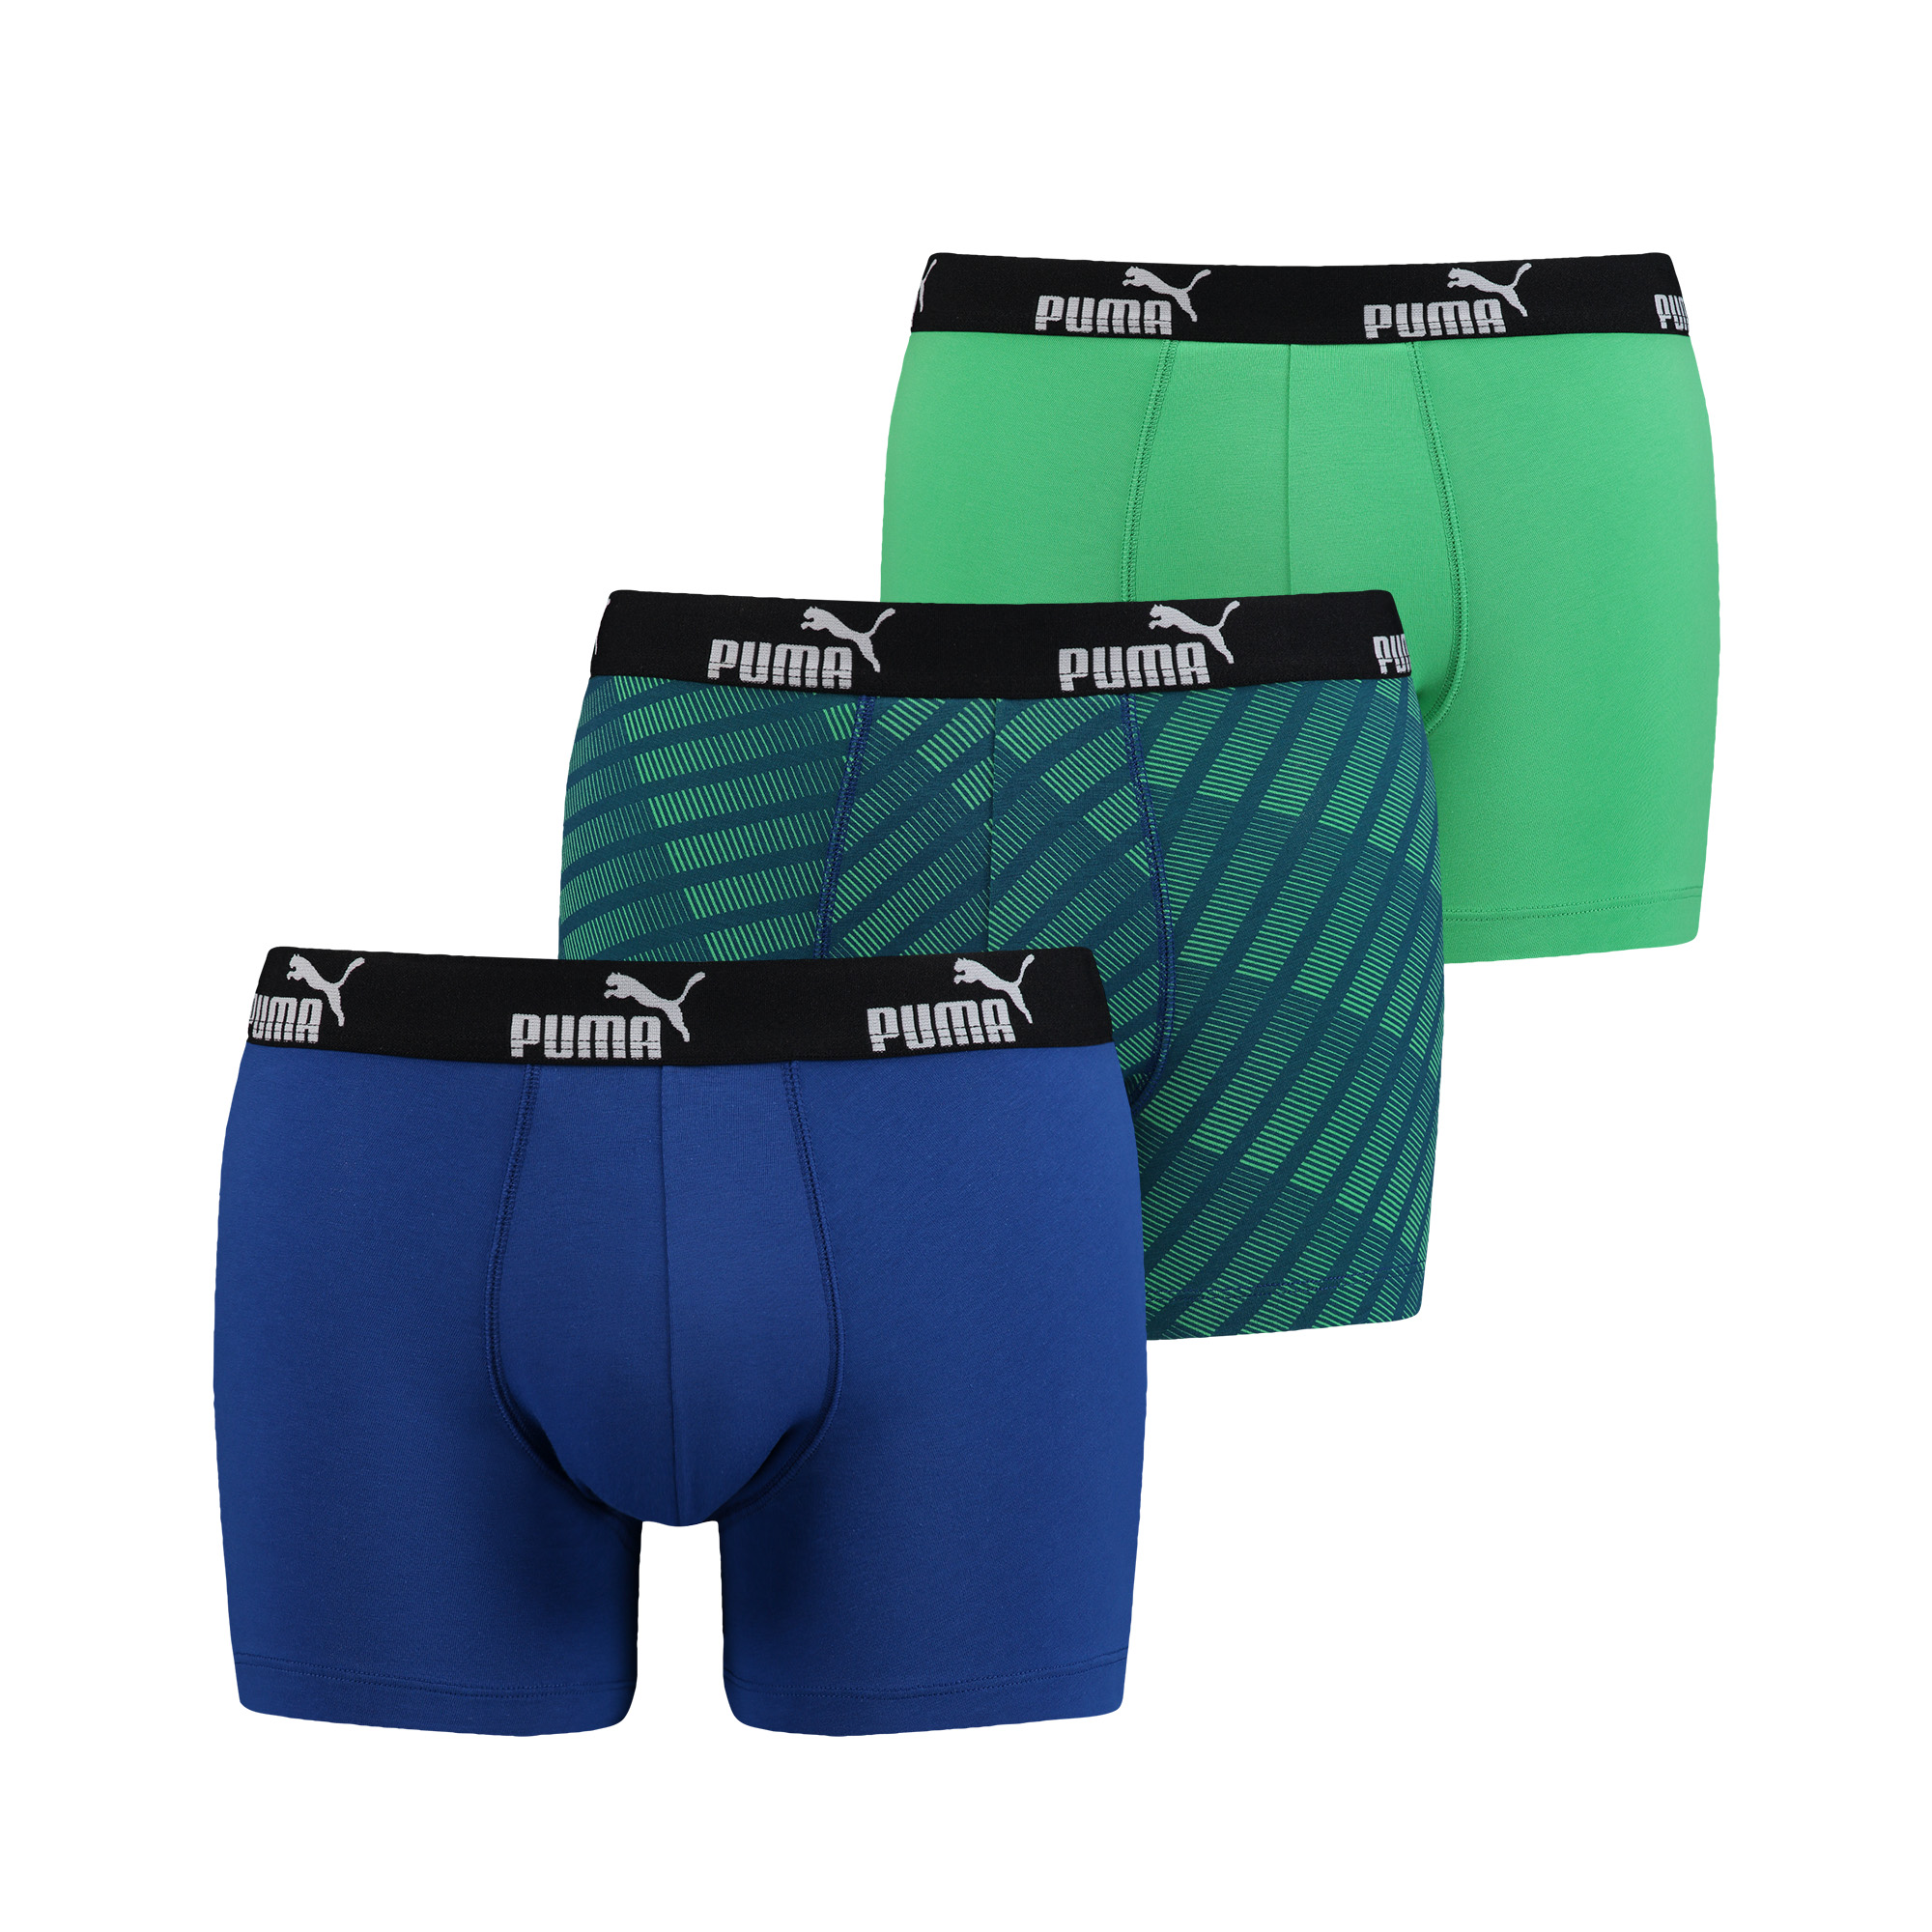 Puma Diagonal Print Boxers Blue/Green 3-pack